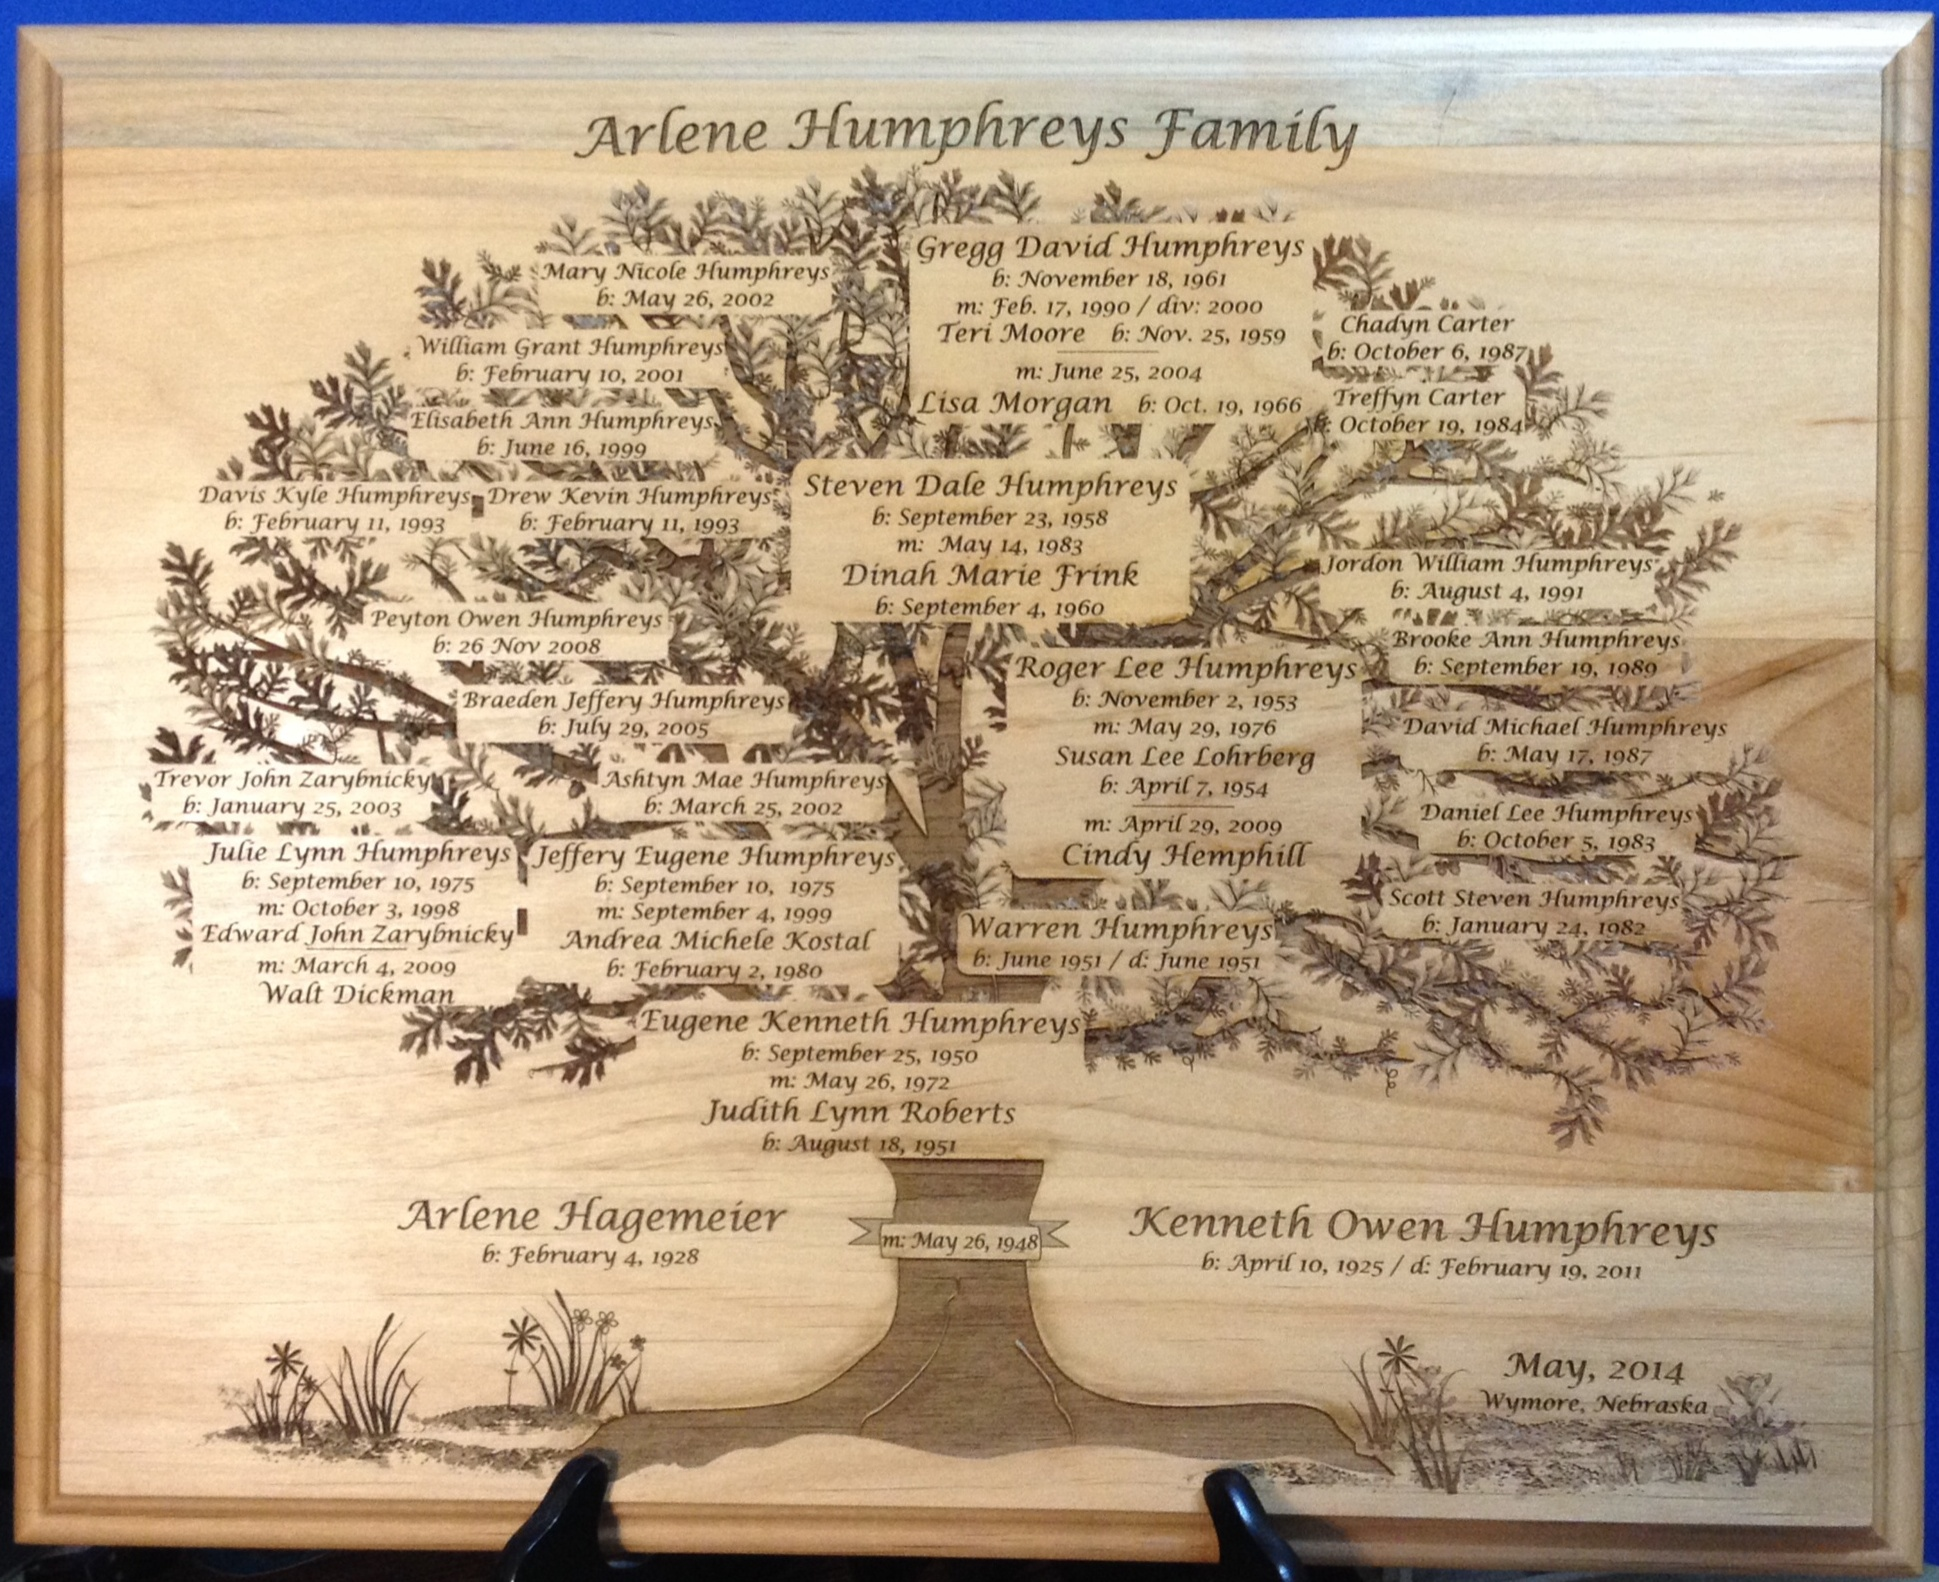 Arline Humphreys Family Tree Plaque